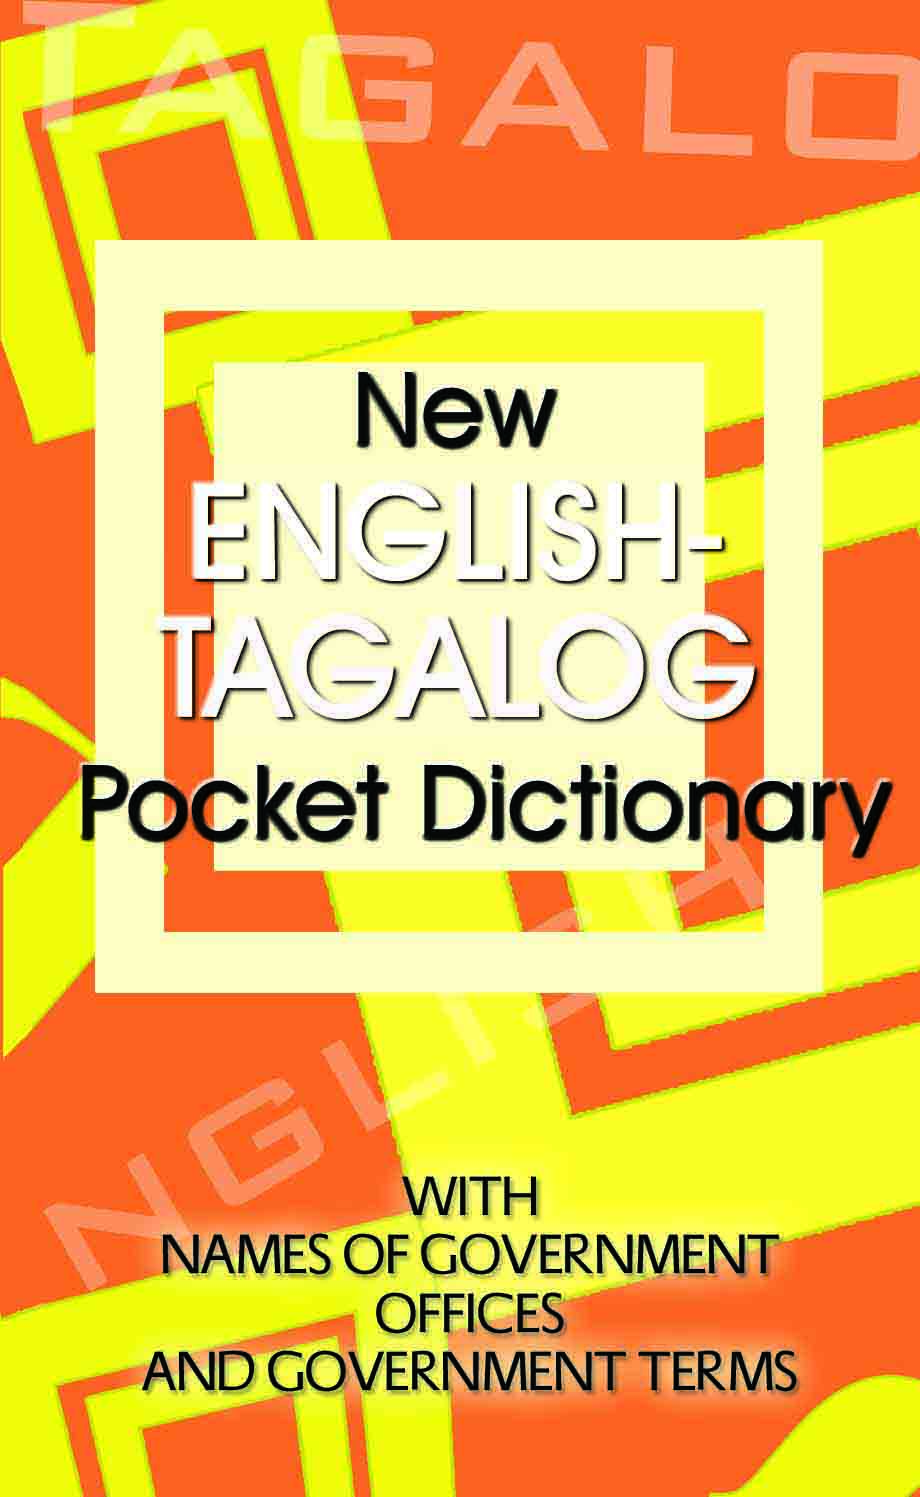 filipino english Find great deals on ebay for english tagalog dictionary in books about nonfiction shop with confidence.